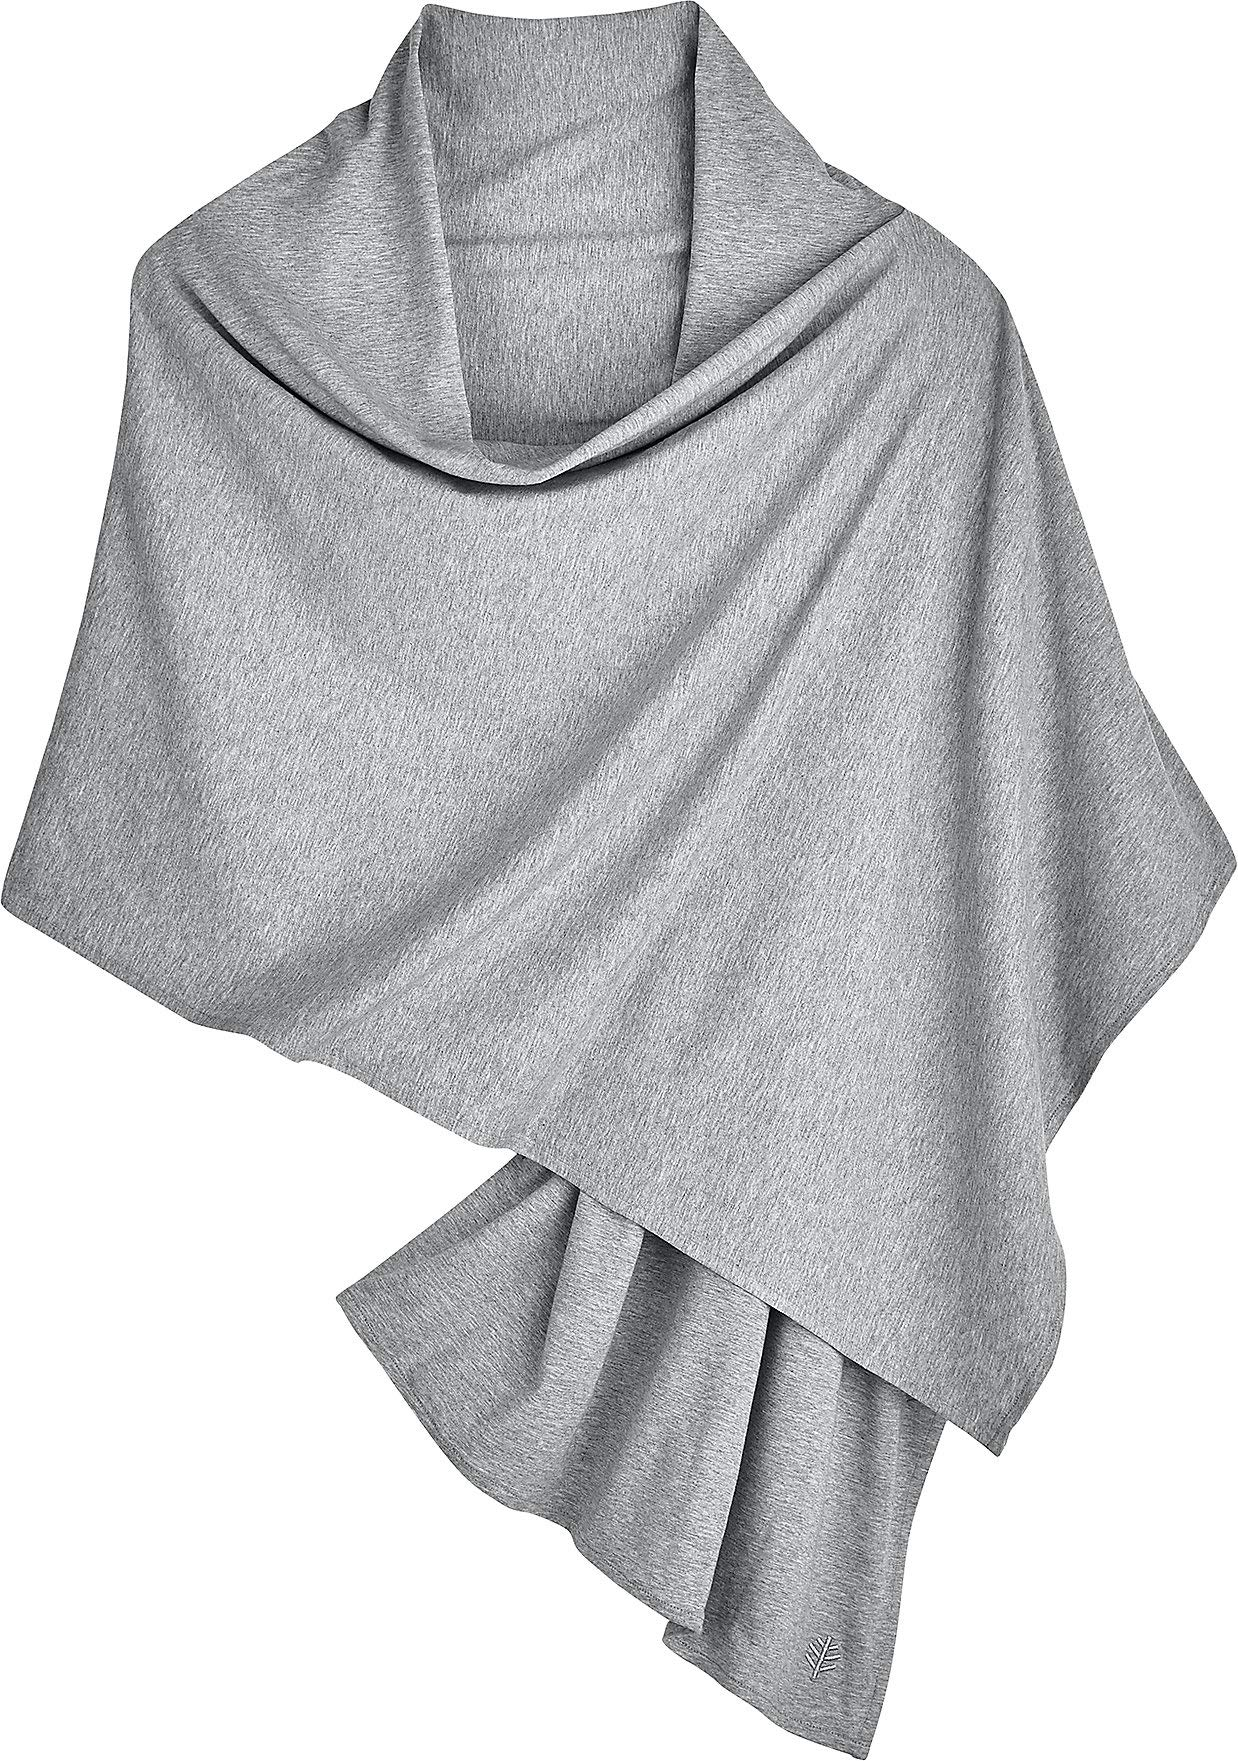 Coolibar UPF 50+ Women's Everyday Beach Shawl - Sun Protective (One Size- Grey Heather)